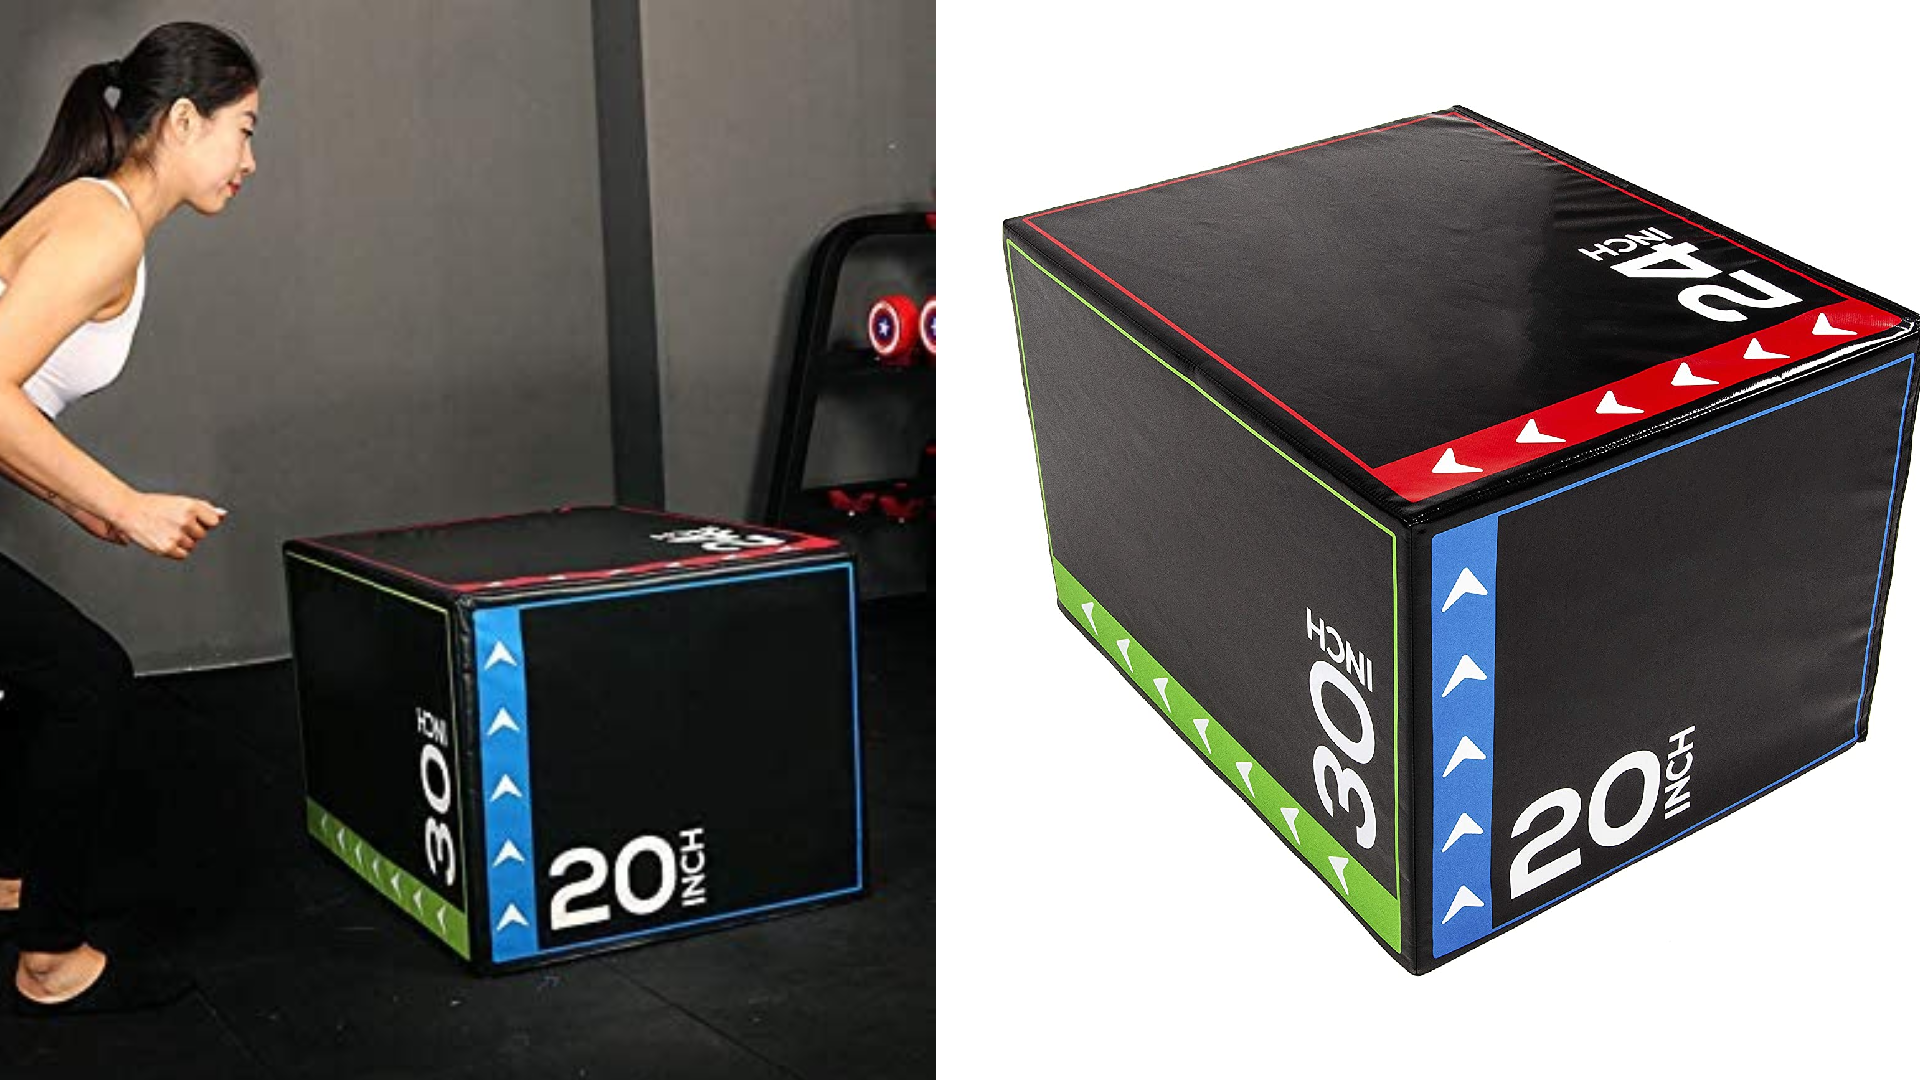 On the left, a woman stands before a black plyometric box in a gym. On the right, the same box on a white background.